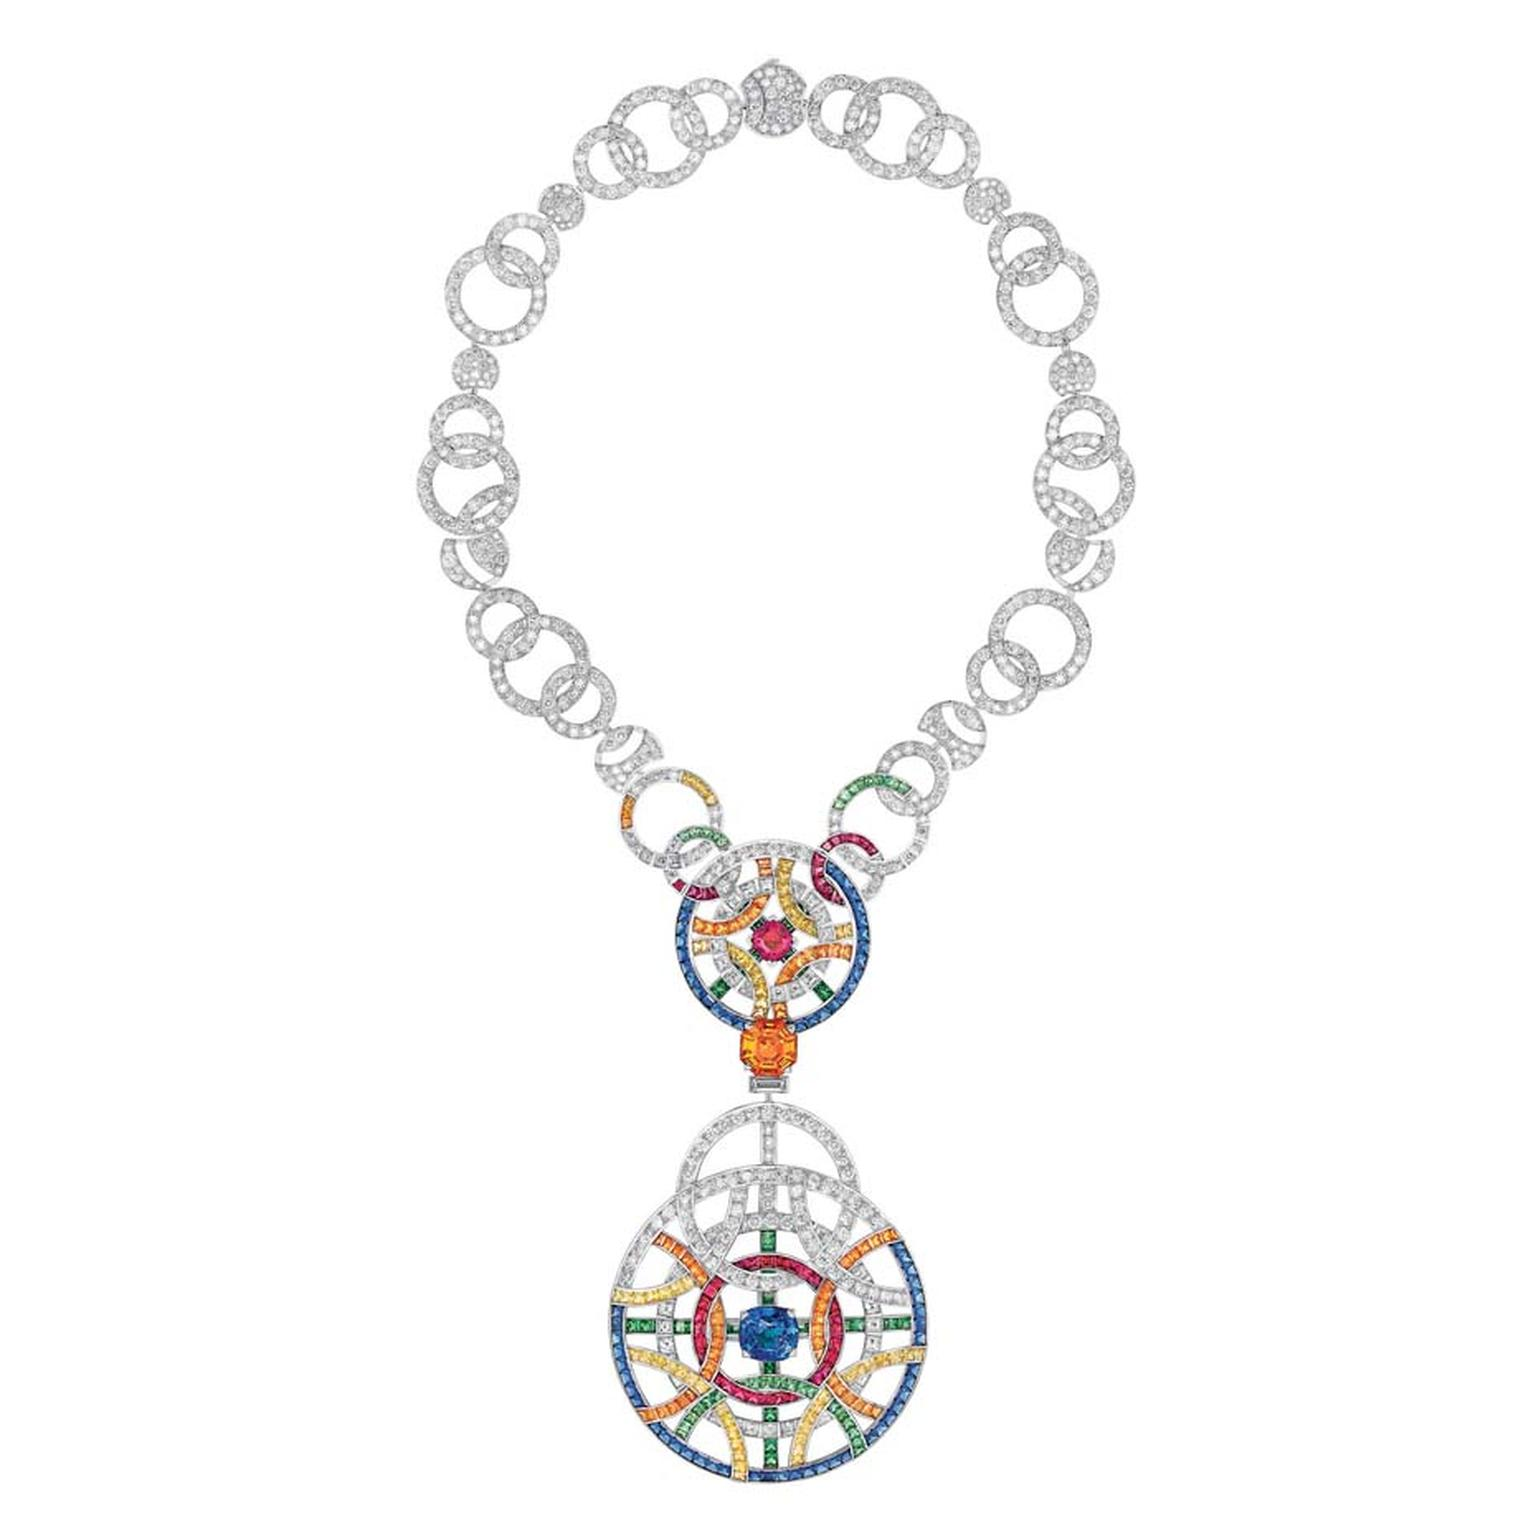 Chanel necklace in white gold set with a spessartite, diamonds, blue and yellow sapphires, red spinels, orange grenats and tsavorites, from the Café Society high jewellery collection.